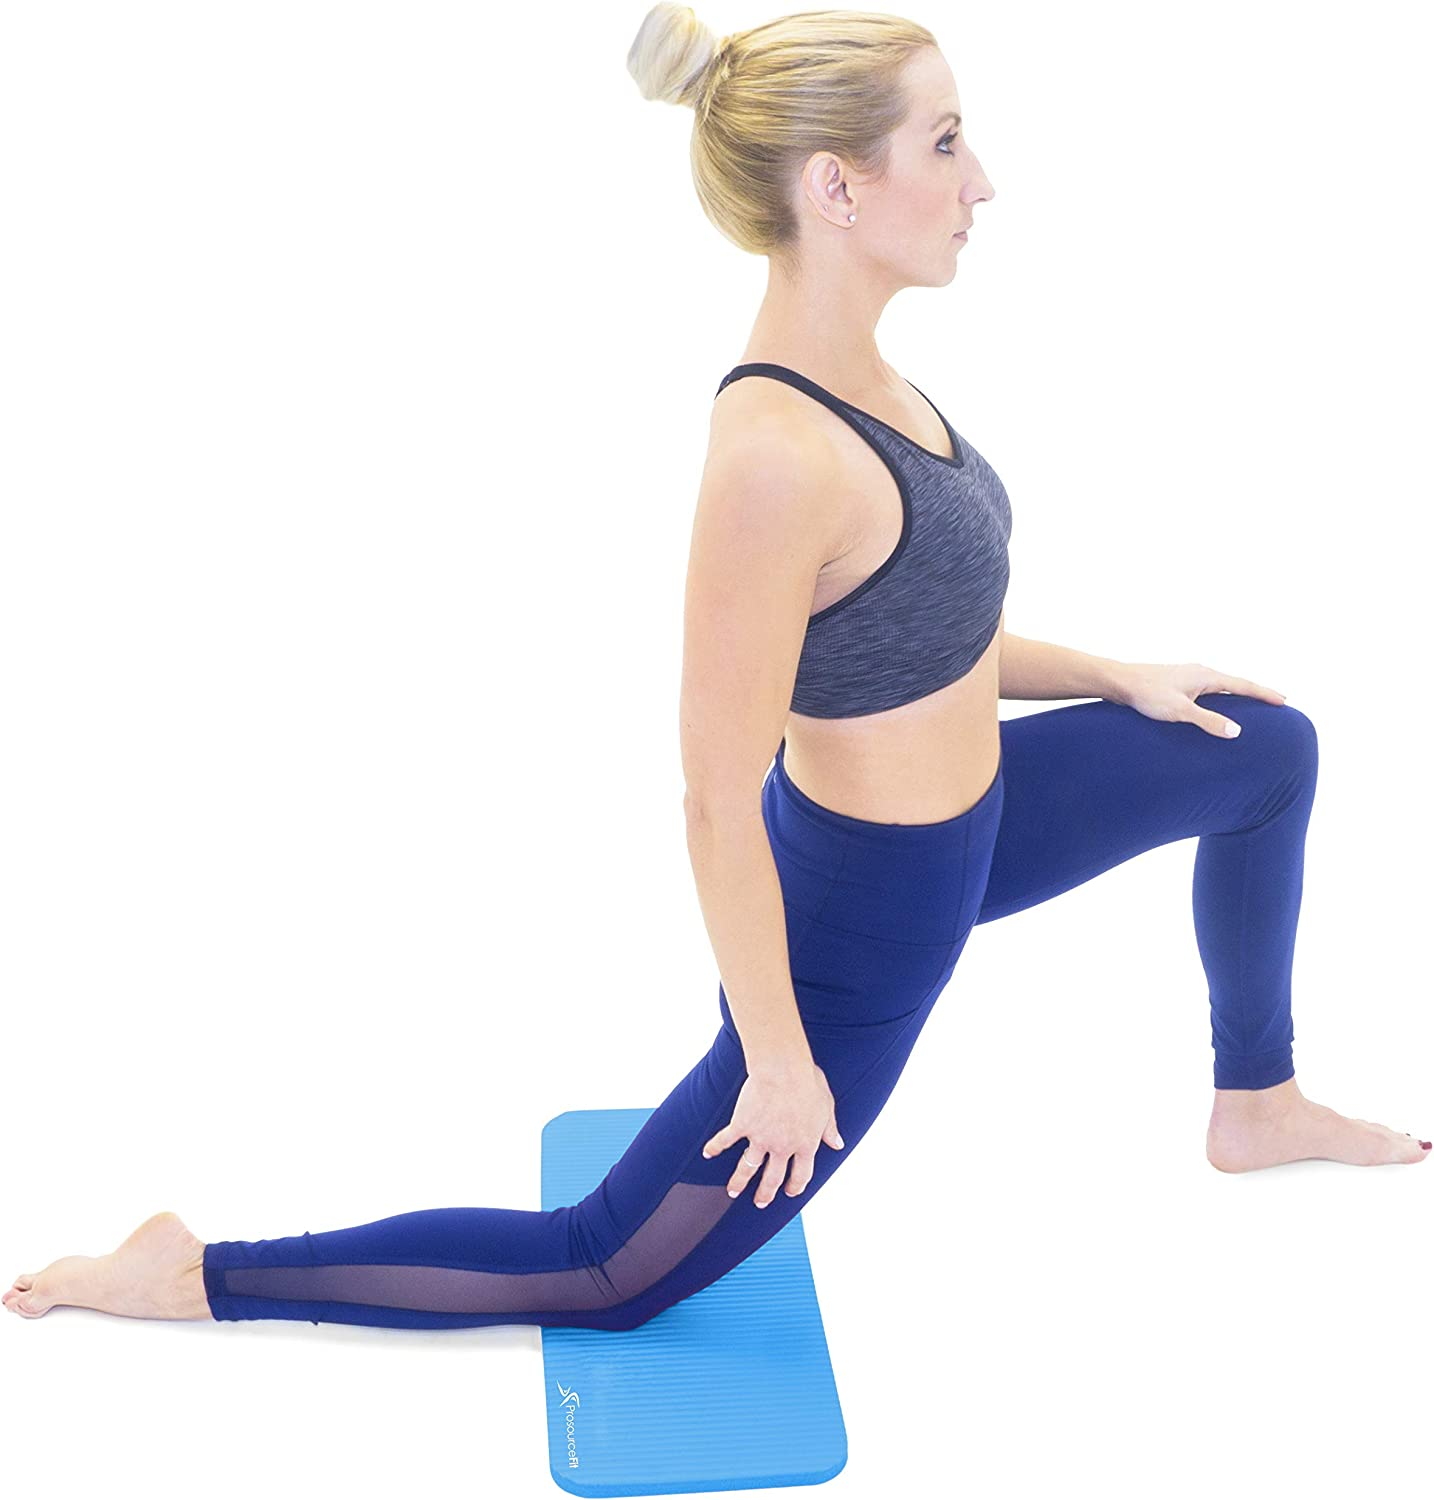 Amazon.com: ProsourceFit - Rodillera y codera para yoga ...